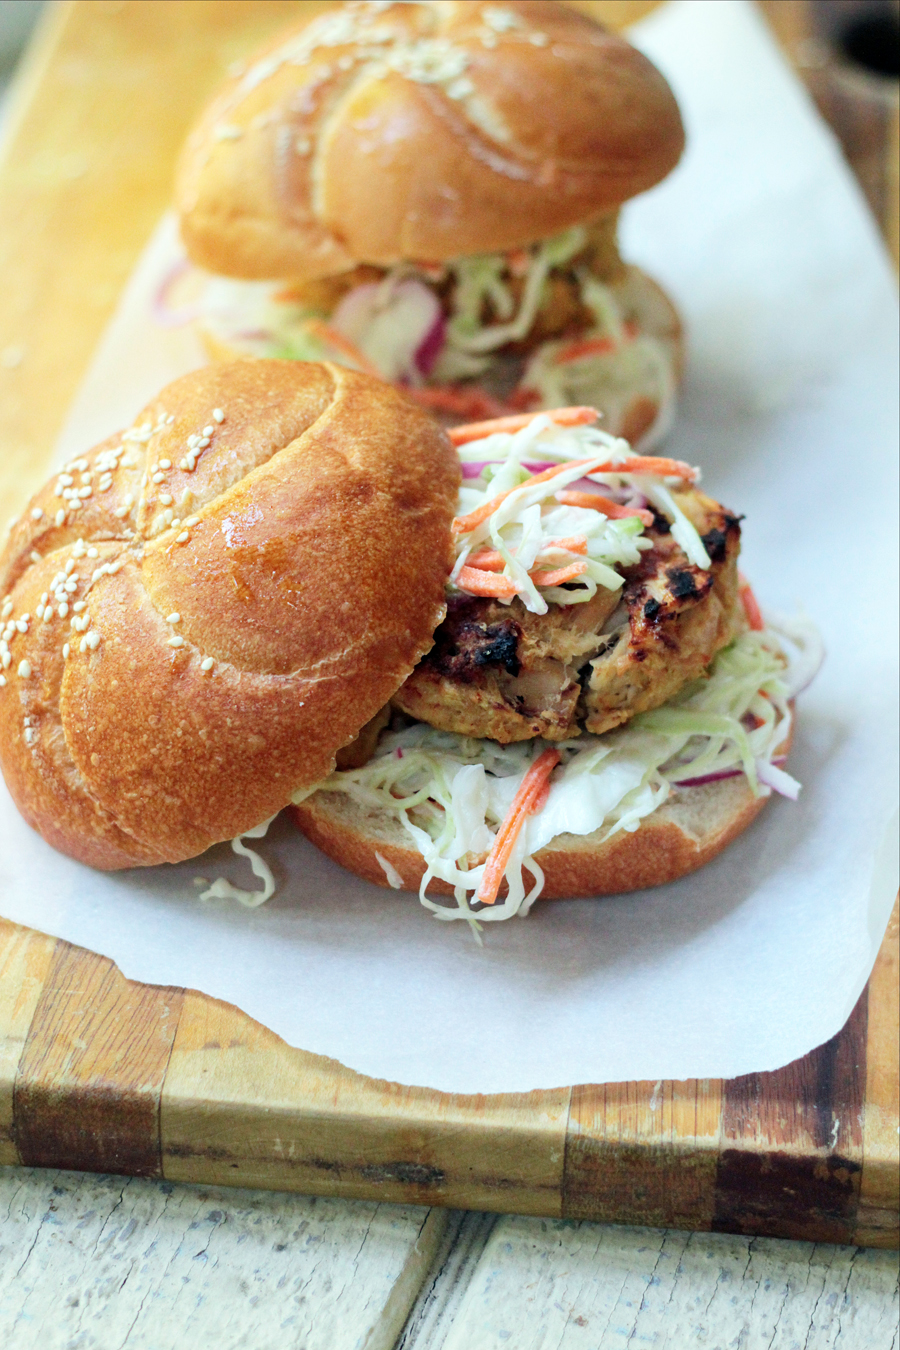 Grilled Tuna Burgers with wasabi slaw